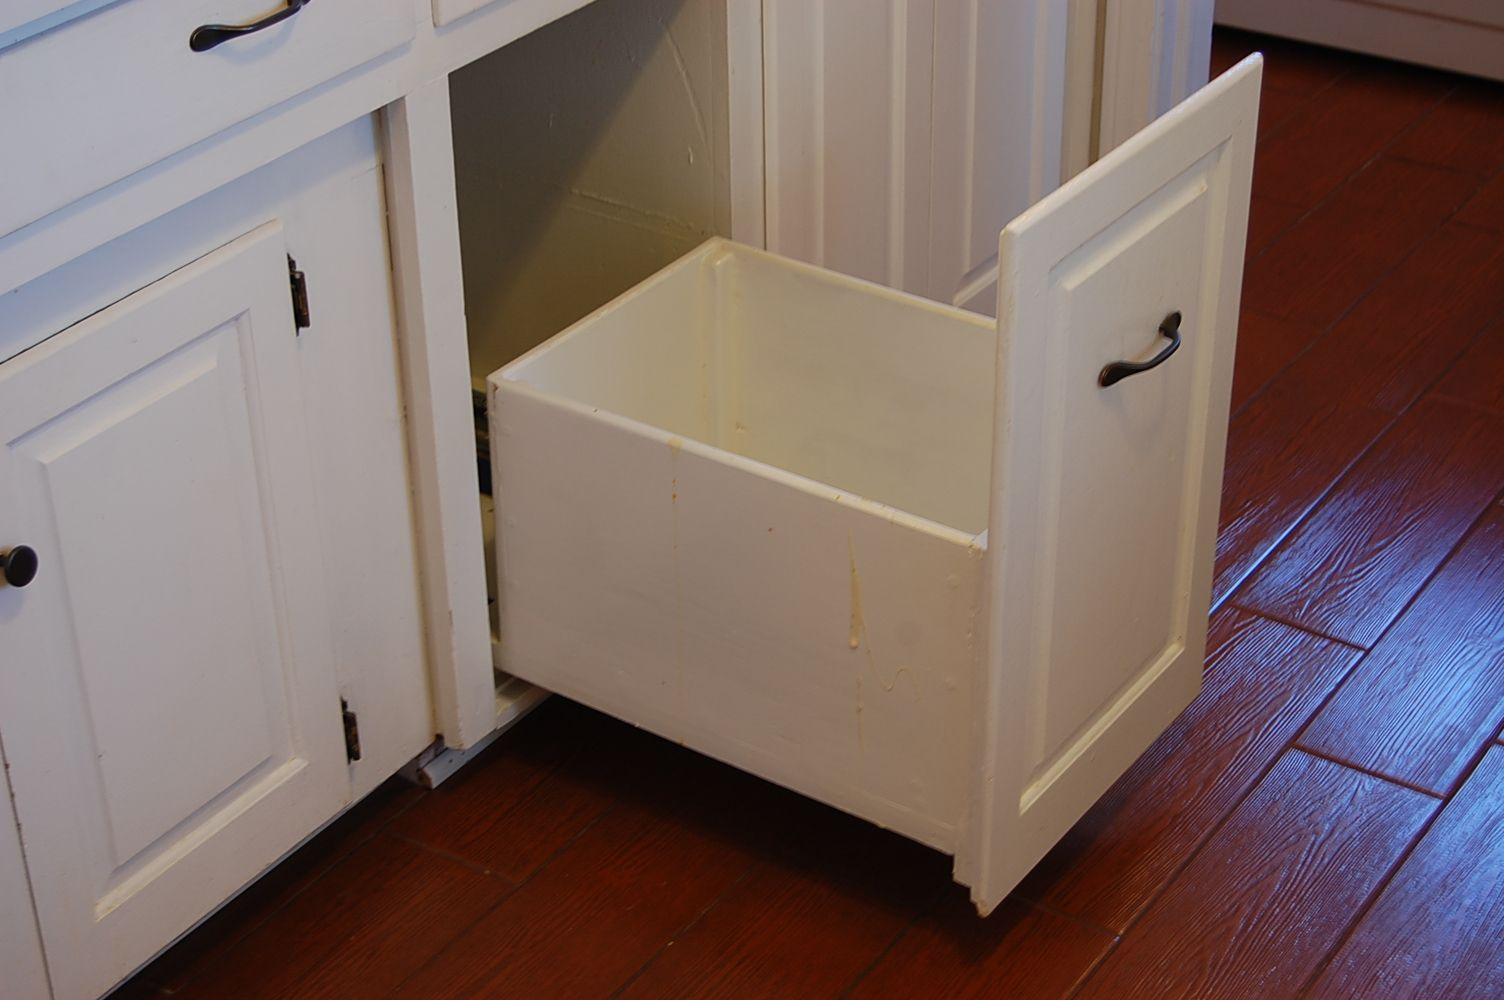 undercounter kitchen trash can models slide out drawer to put in place of the removed